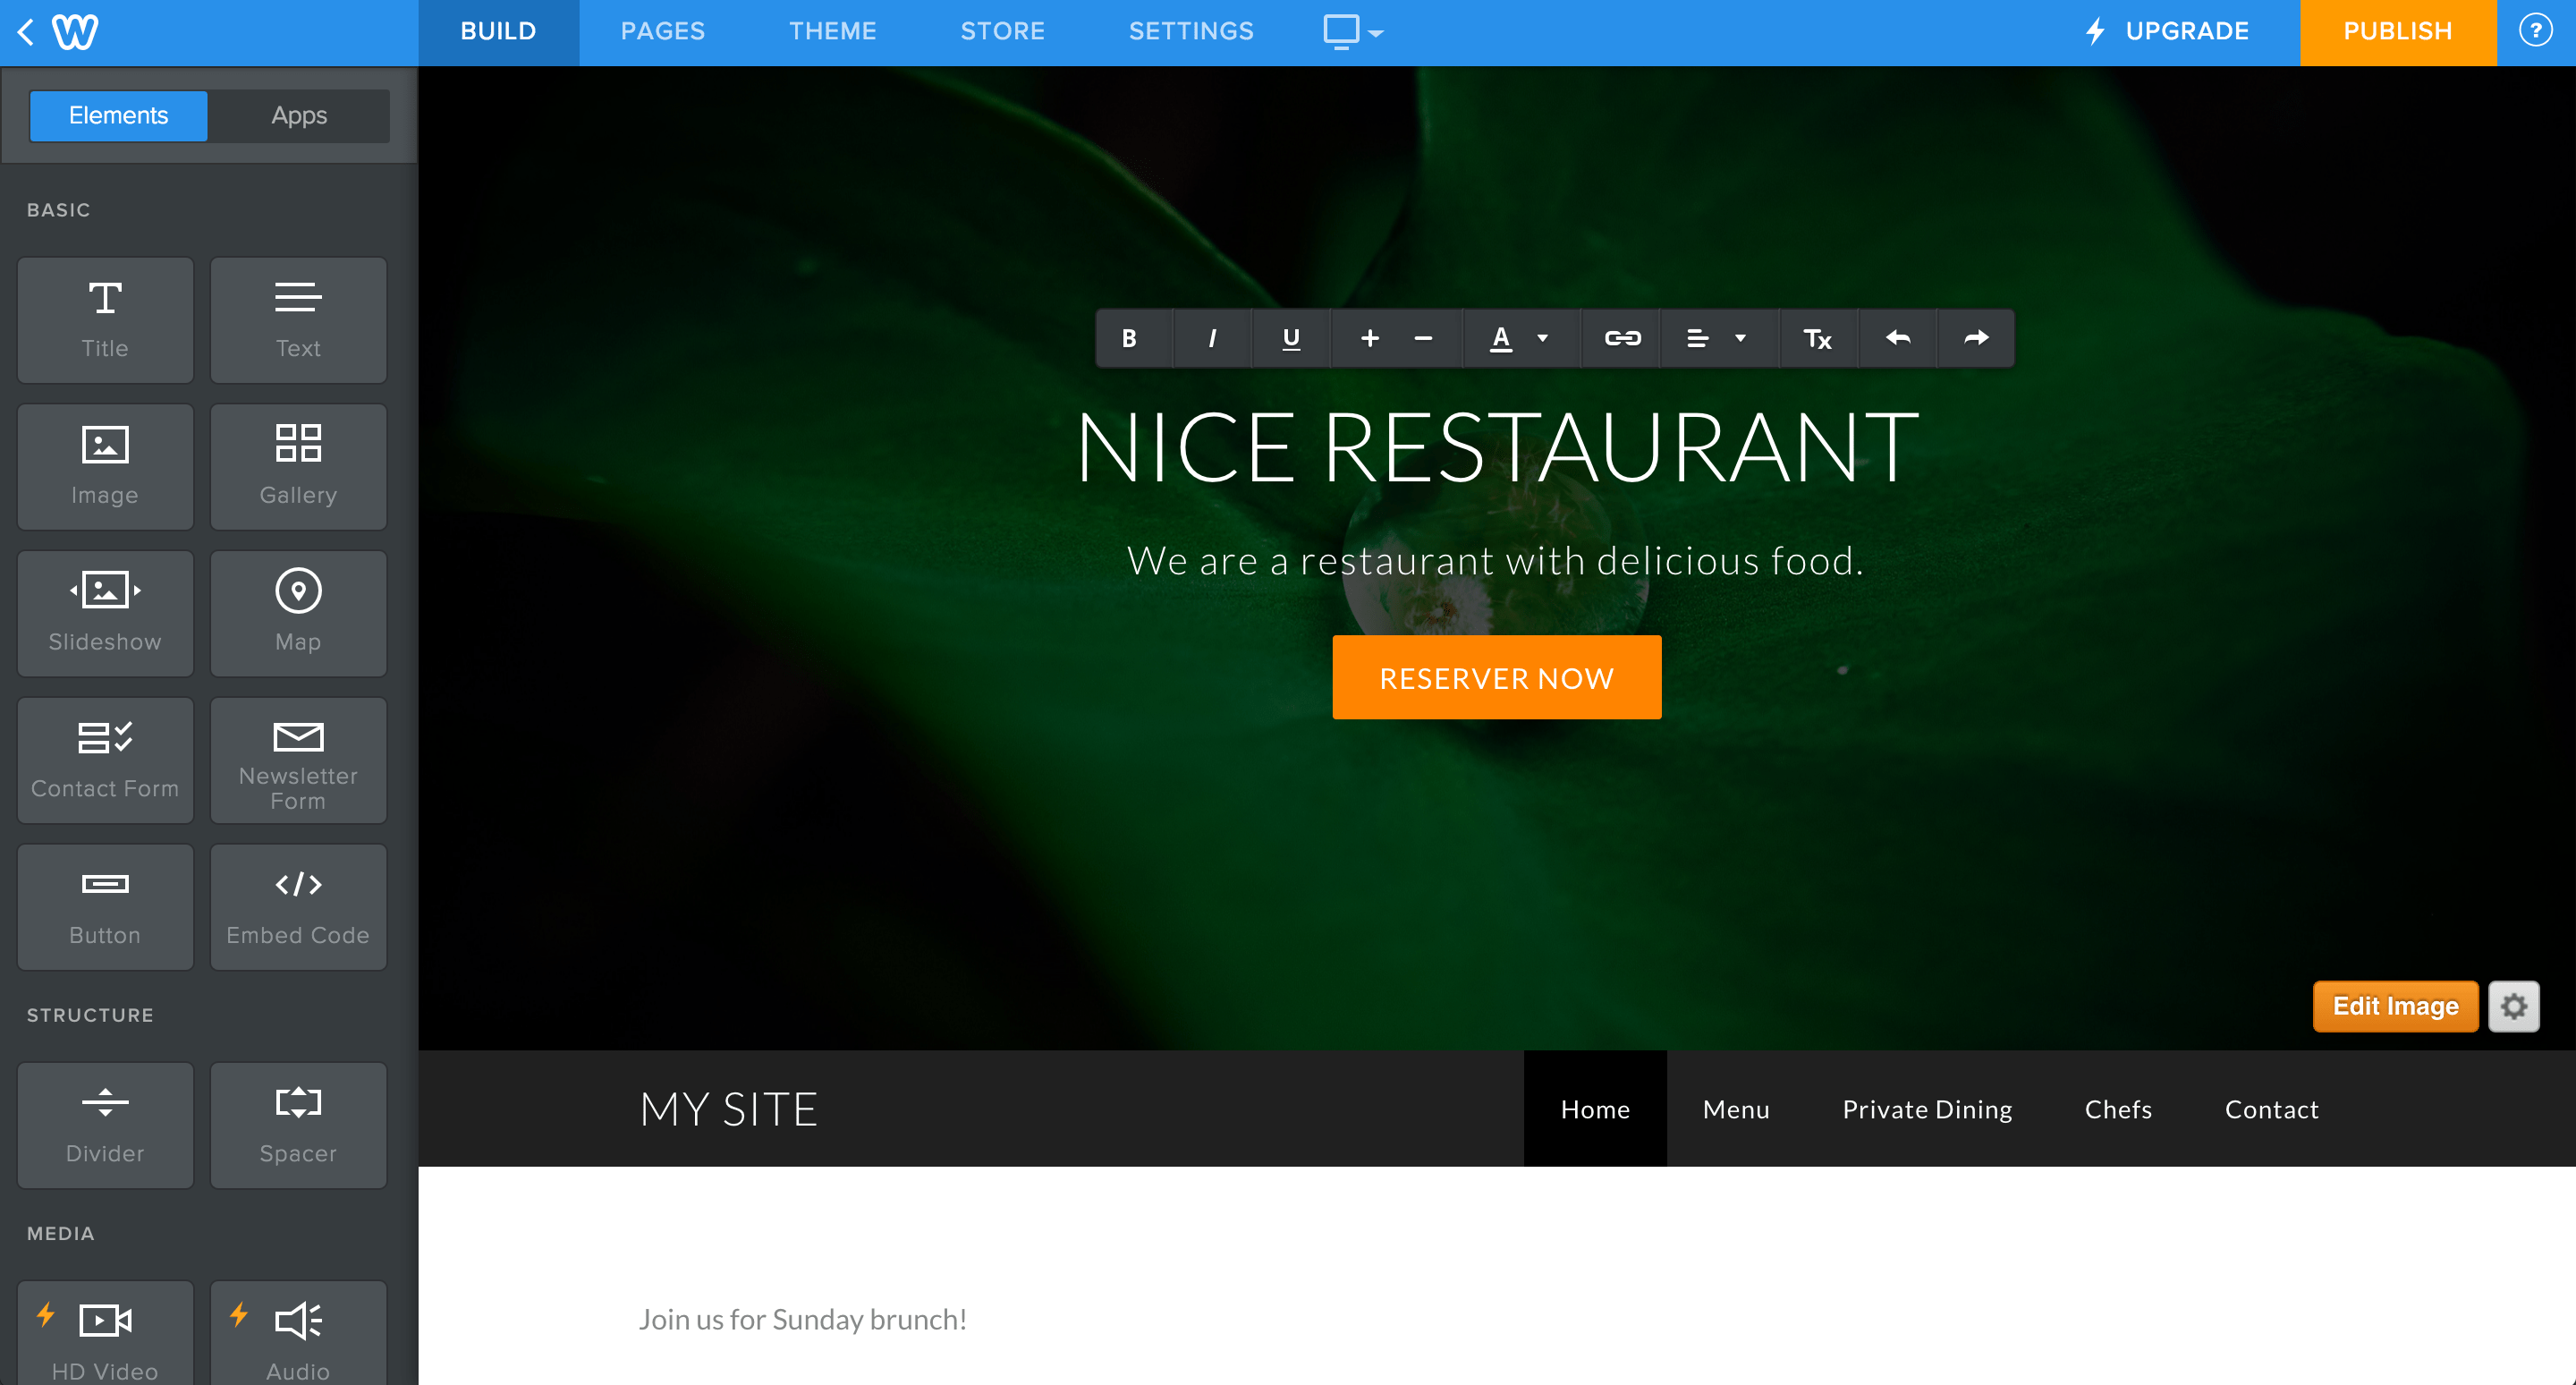 Weebly and Squarespace provide a similar editing experience.